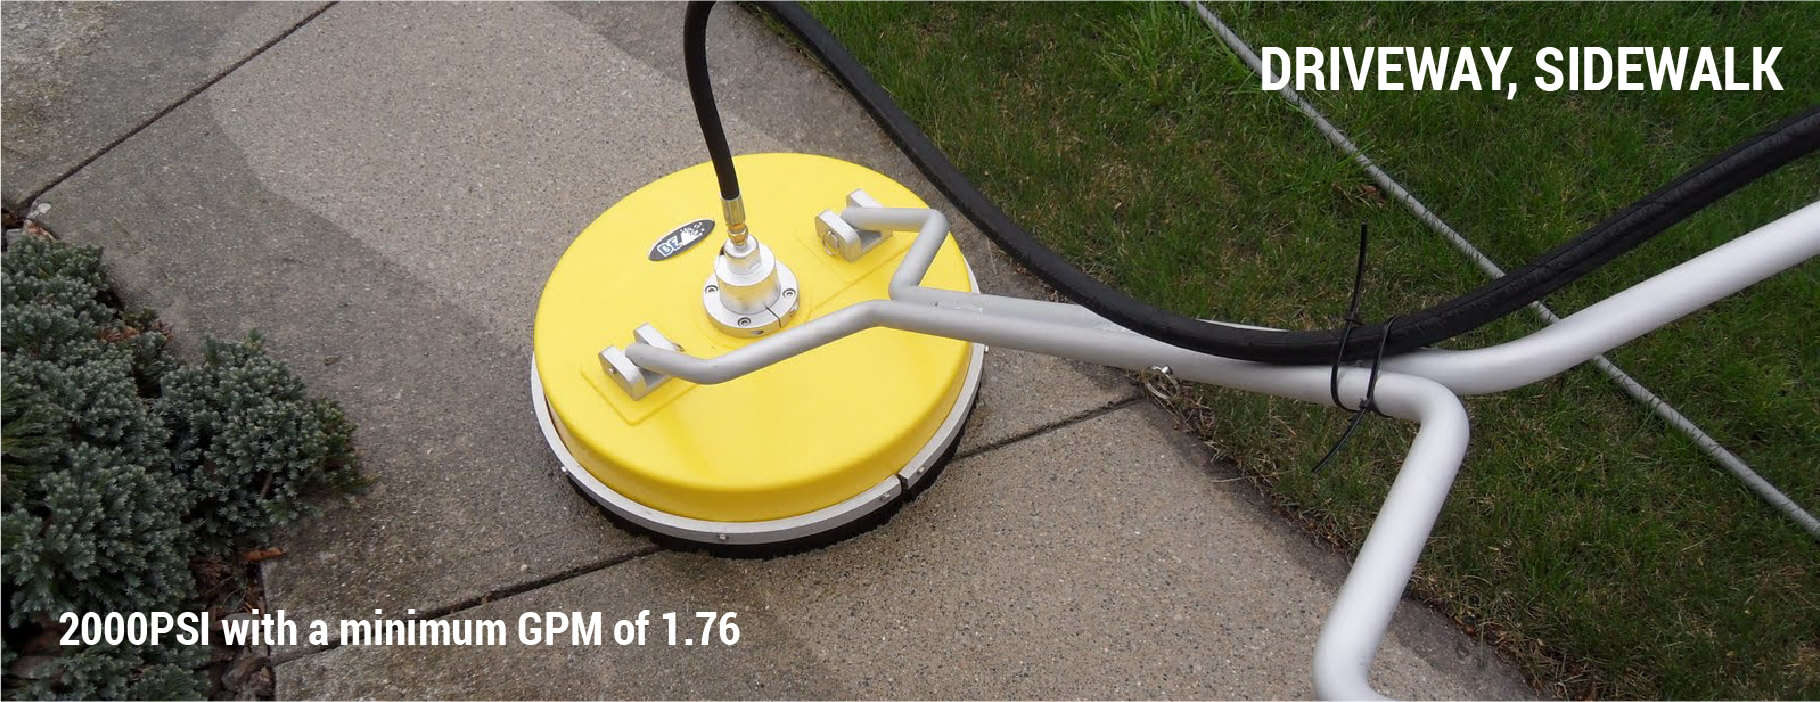 What PSI Do You Need To Pressure Wash a Driveway?